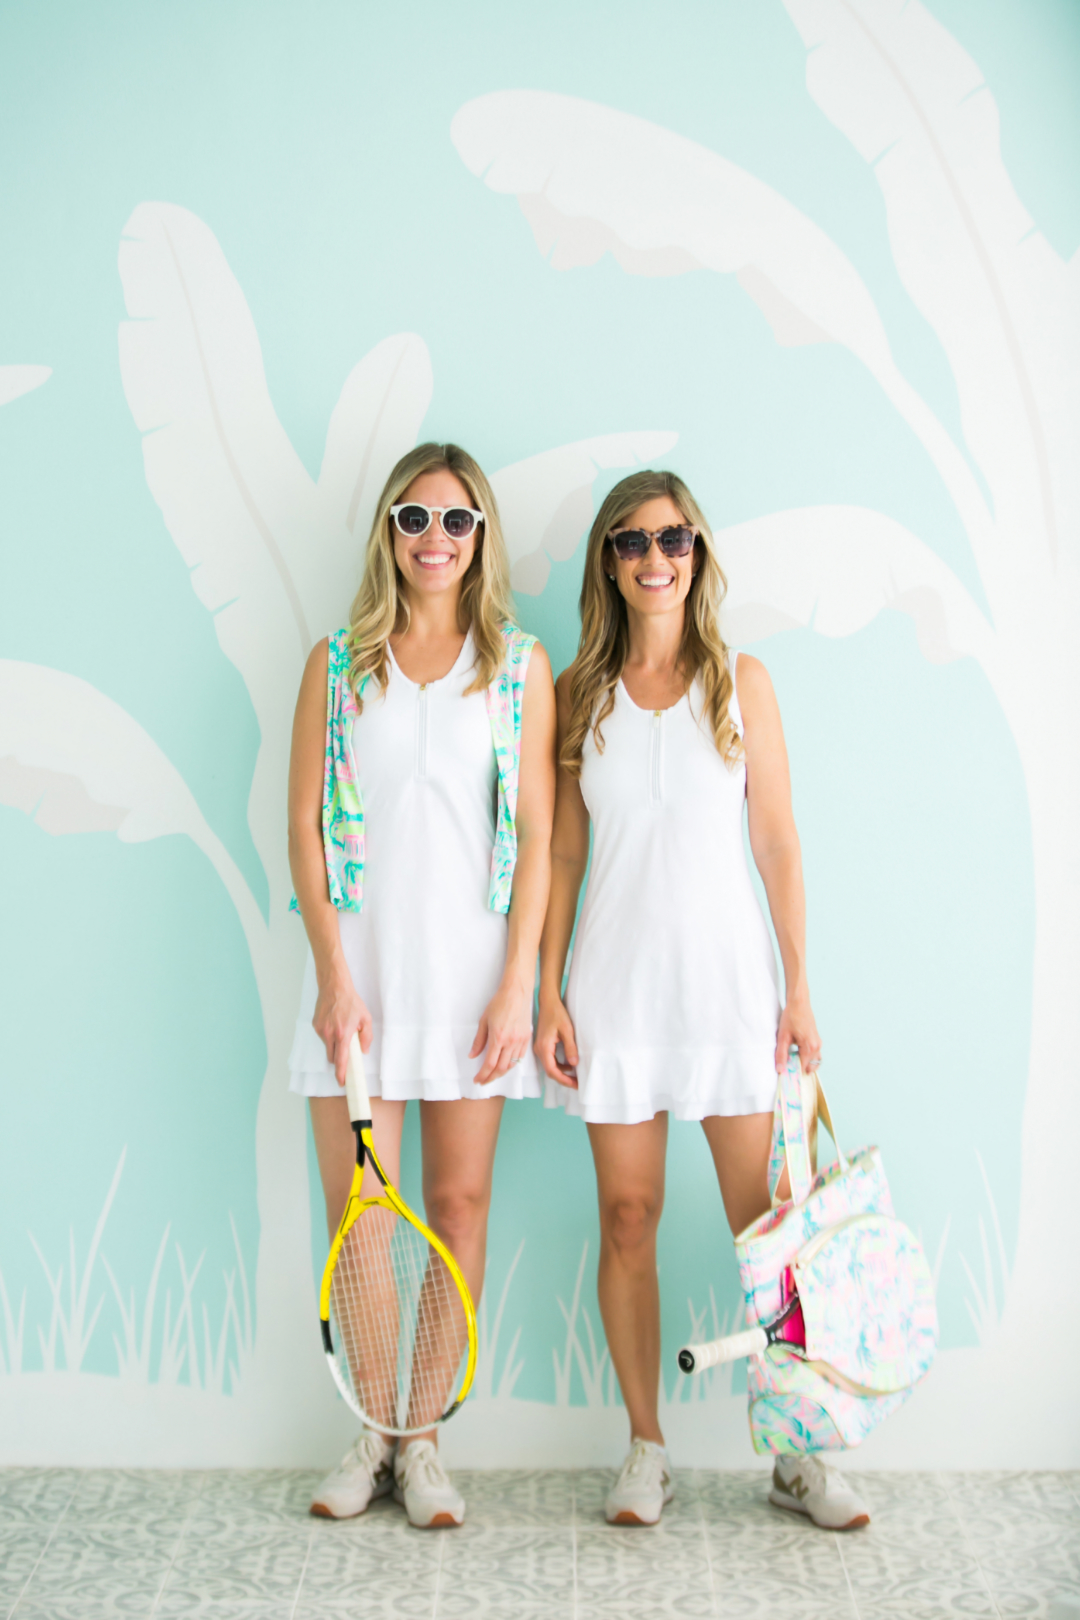 Sumer Lately: Tennis with Palm Beach Lately wearing Lilly Pulitzer